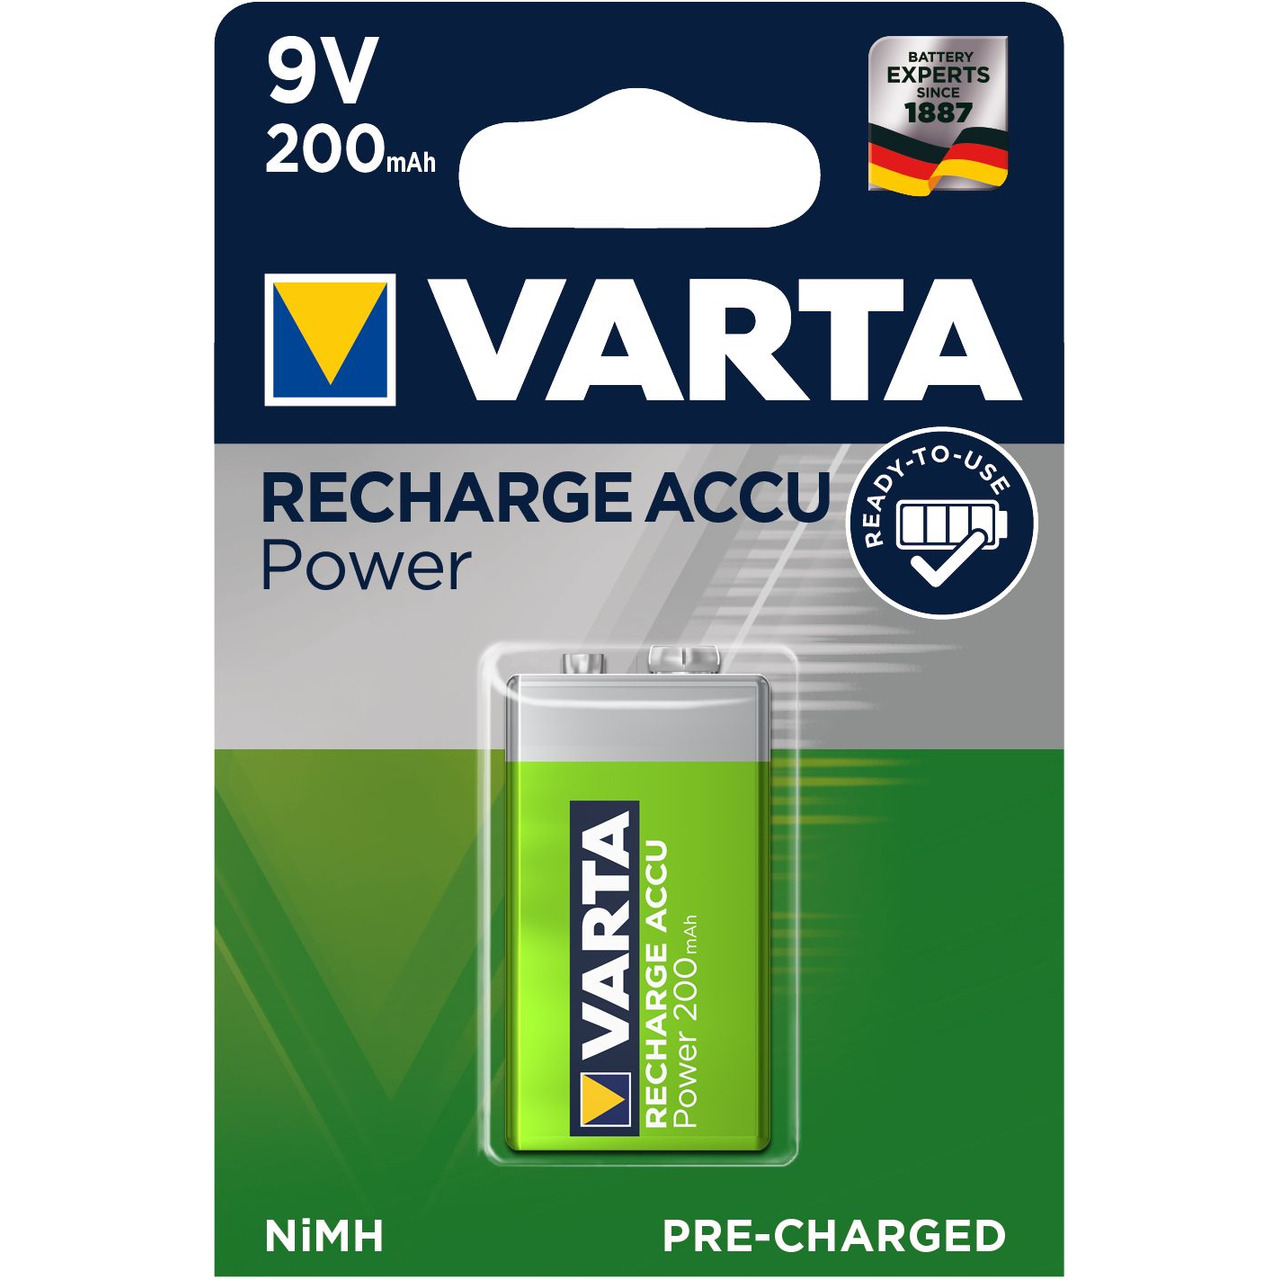 VARTA RECH-ACCU Power 9V 200mAh Blister 1